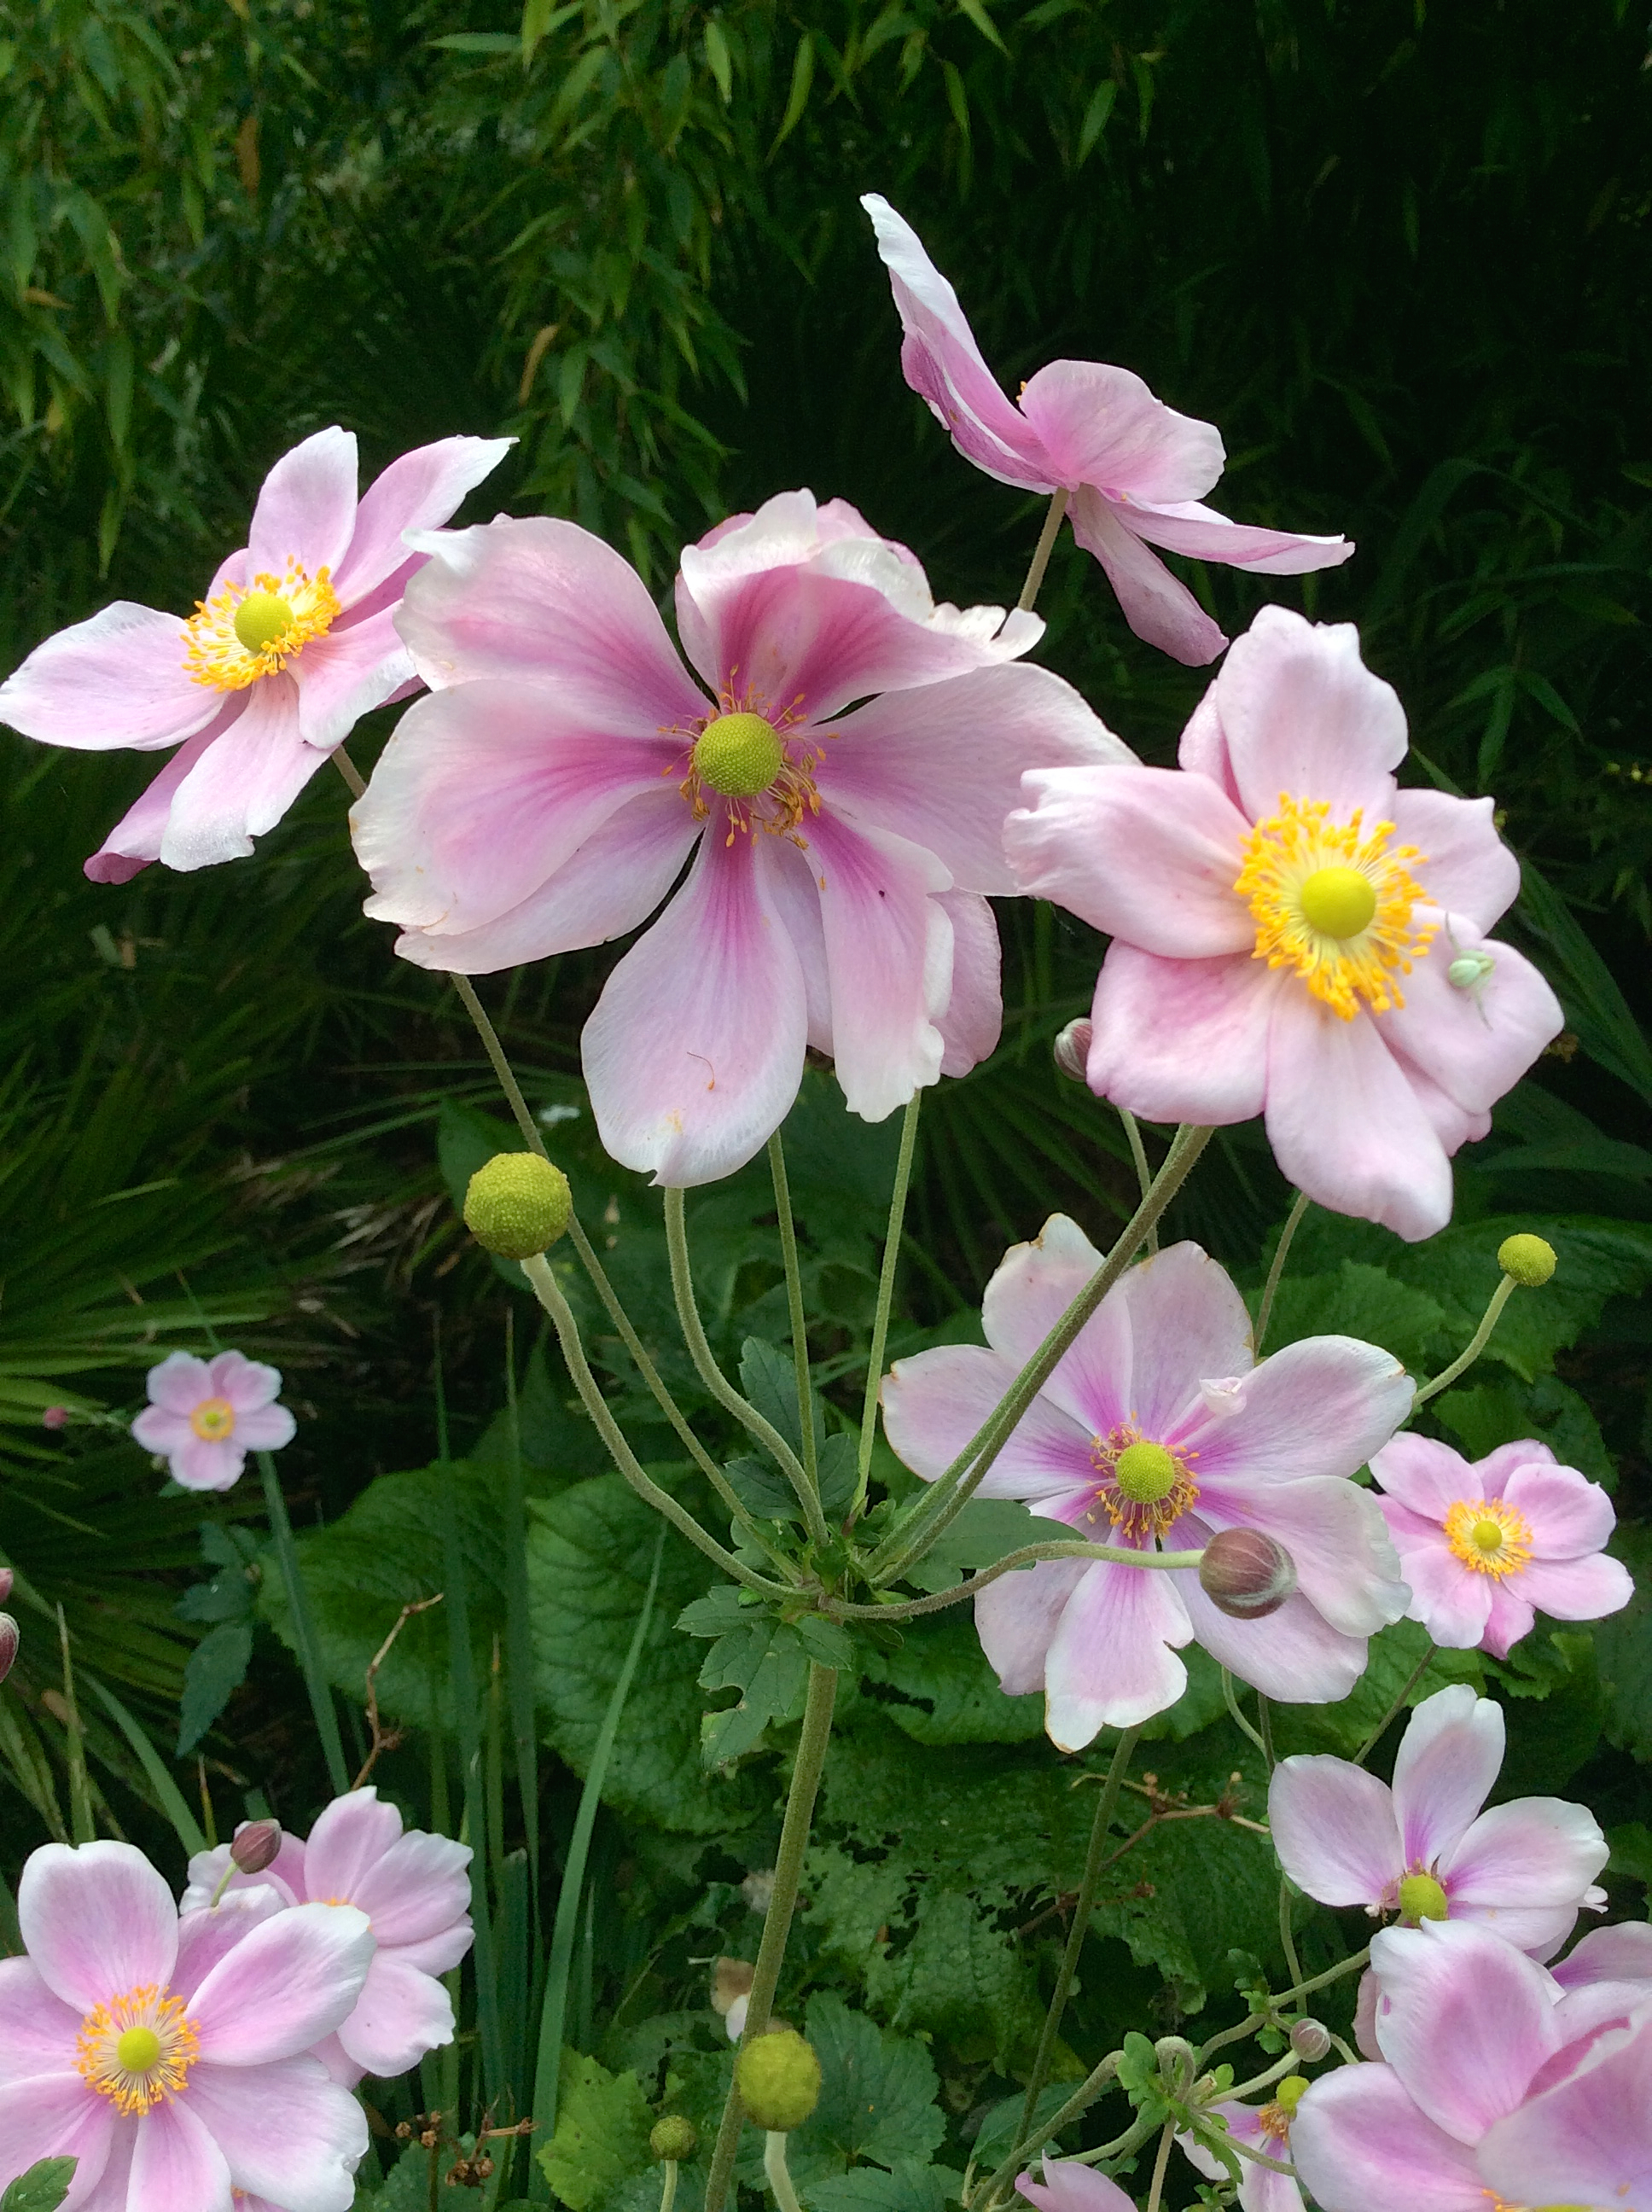 September still lots of late colour abbotsbury subtropical gardens next are the ever popular japanese anemones which give a fantastic display of delicate pink or white flowers at this time of year we have several varieties mightylinksfo Gallery